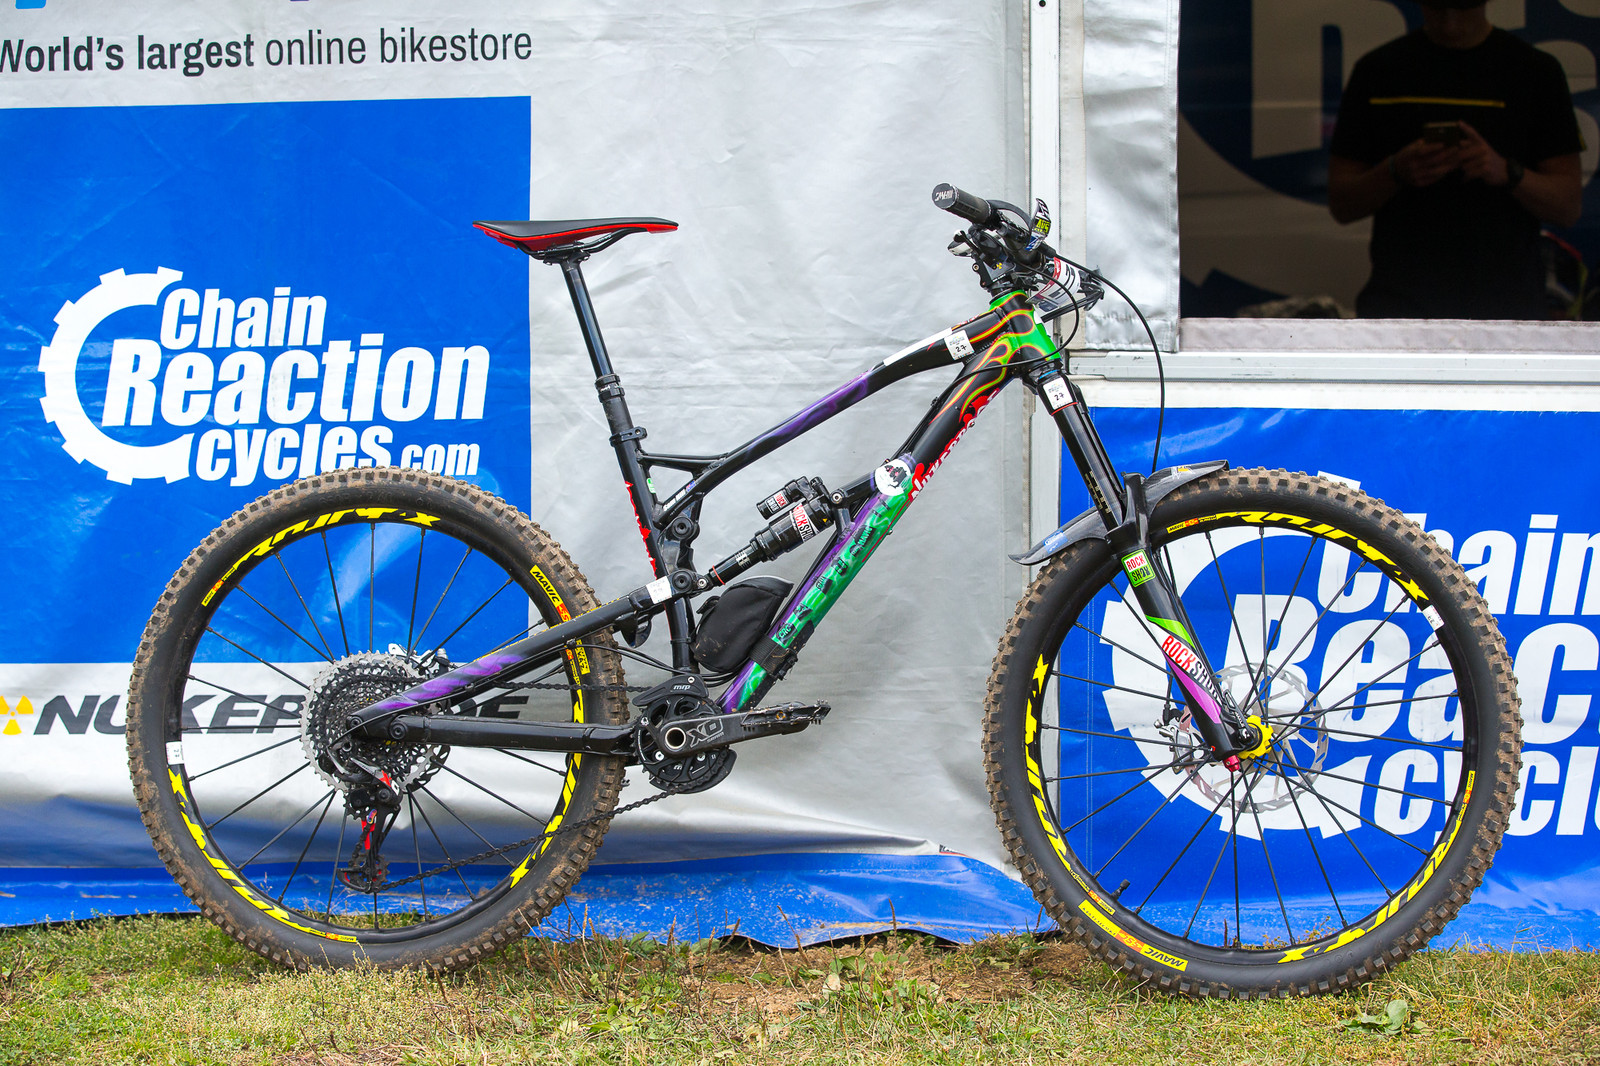 Sam Hill's Grave Digger Nukeproof Mega 275 - Pro Bike Check - Sam Hill's Grave Digger Nukeproof - Mountain Biking Pictures - Vital MTB